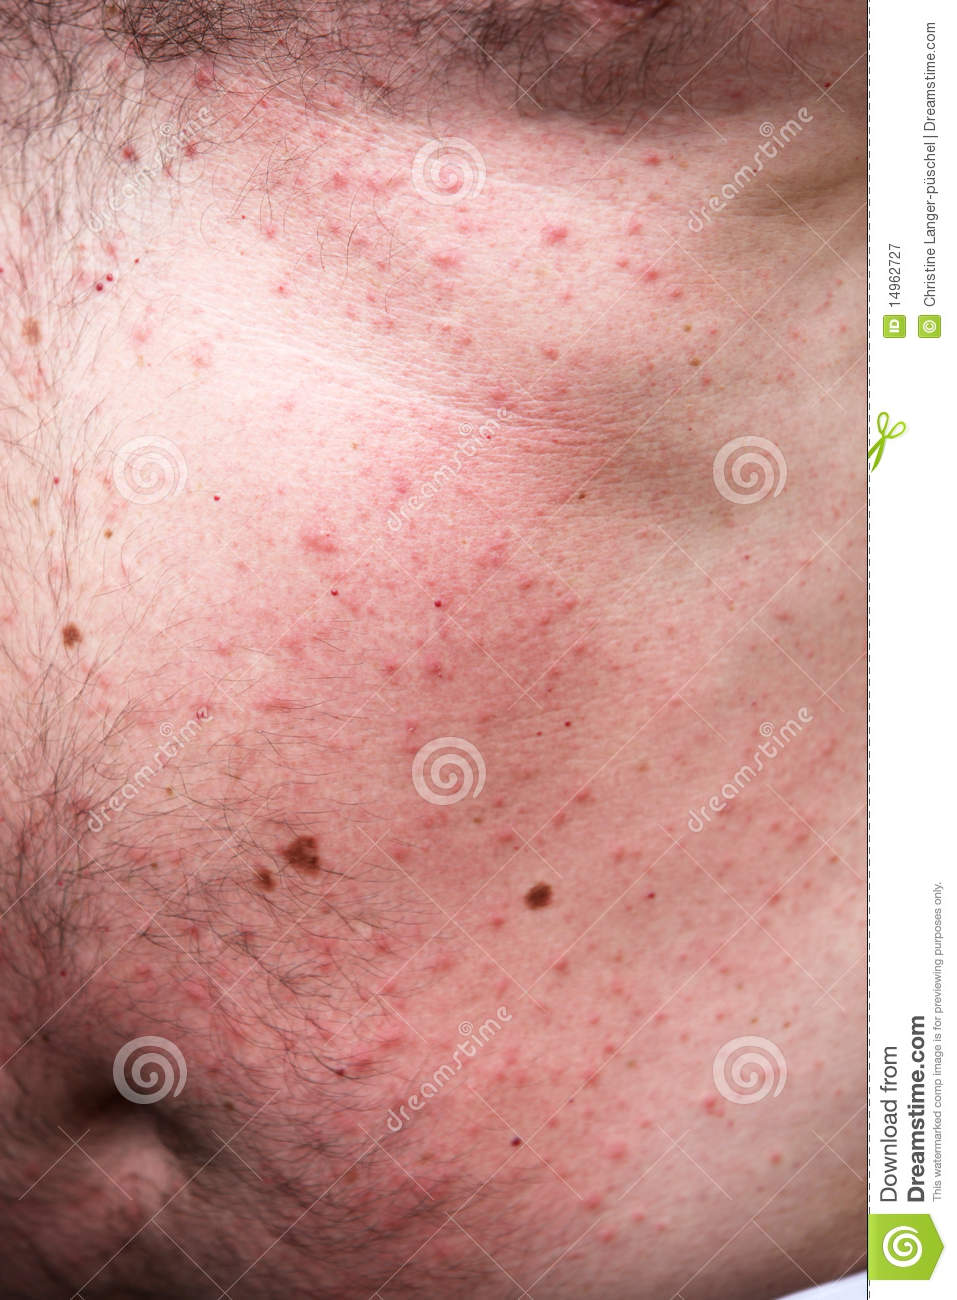 Rash or sun allergy stock image  Image of close, pain - 14962727